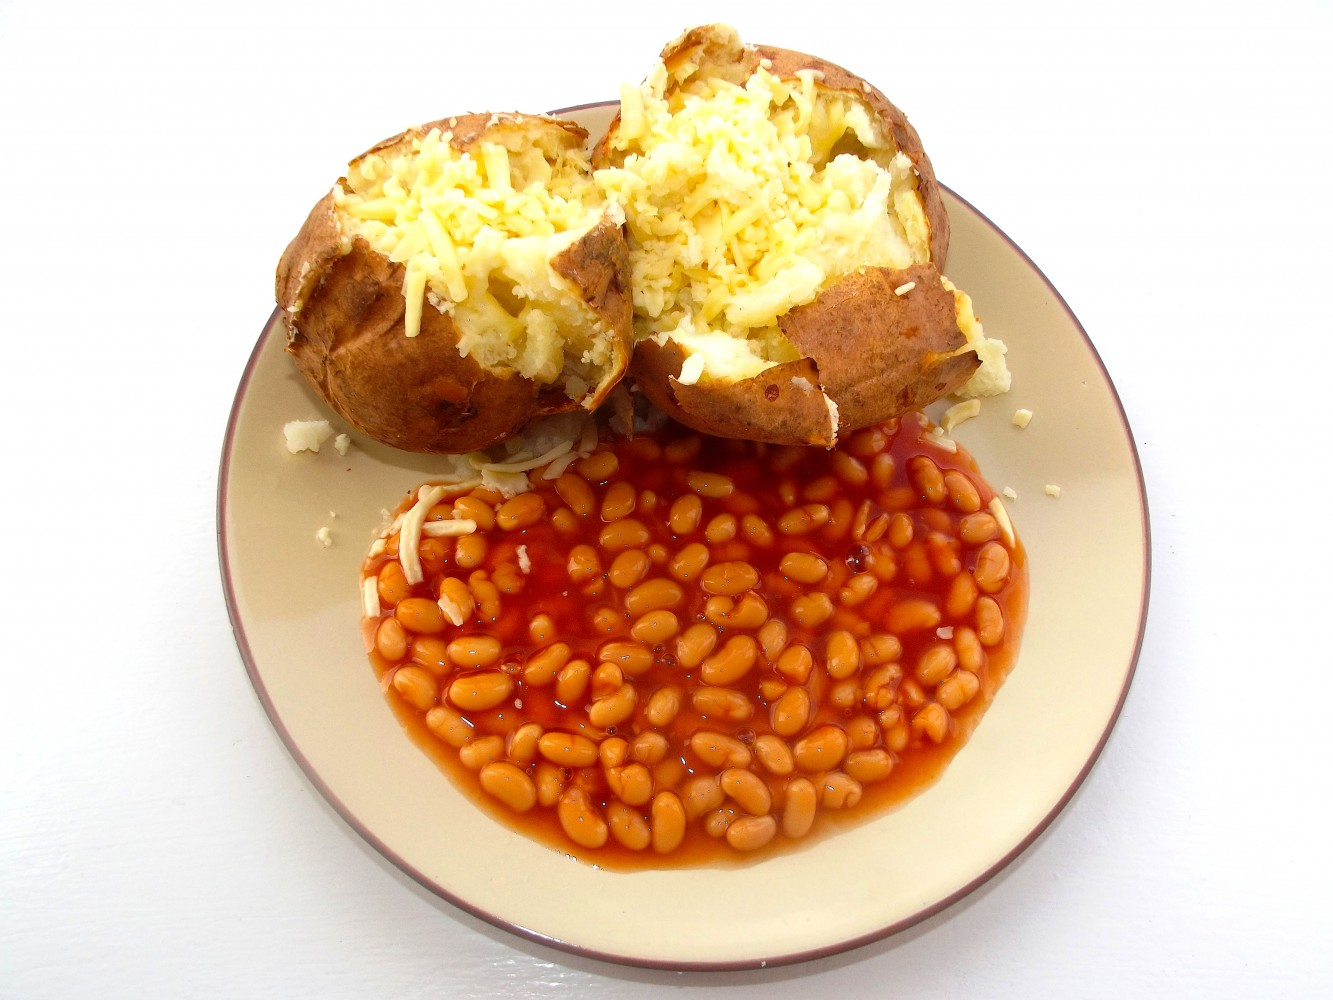 Roasted jacket potato with baked beans